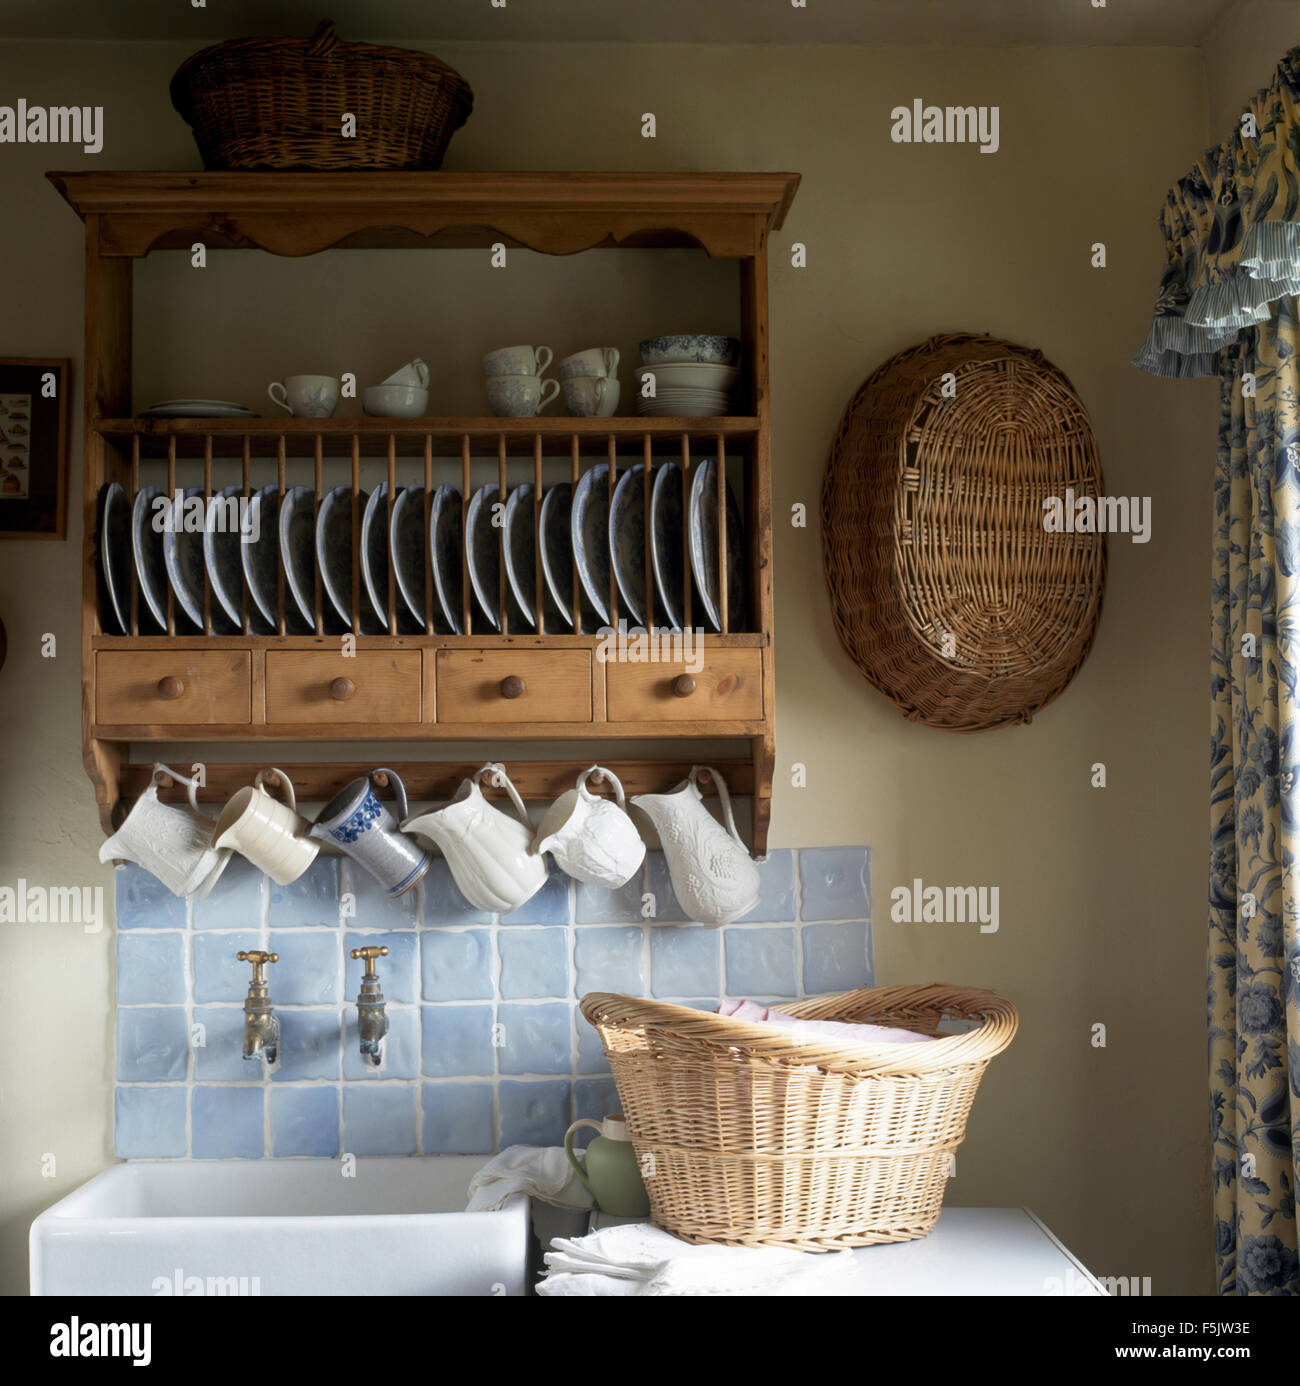 Plate Rack Stock Photos Amp Plate Rack Stock Images Alamy